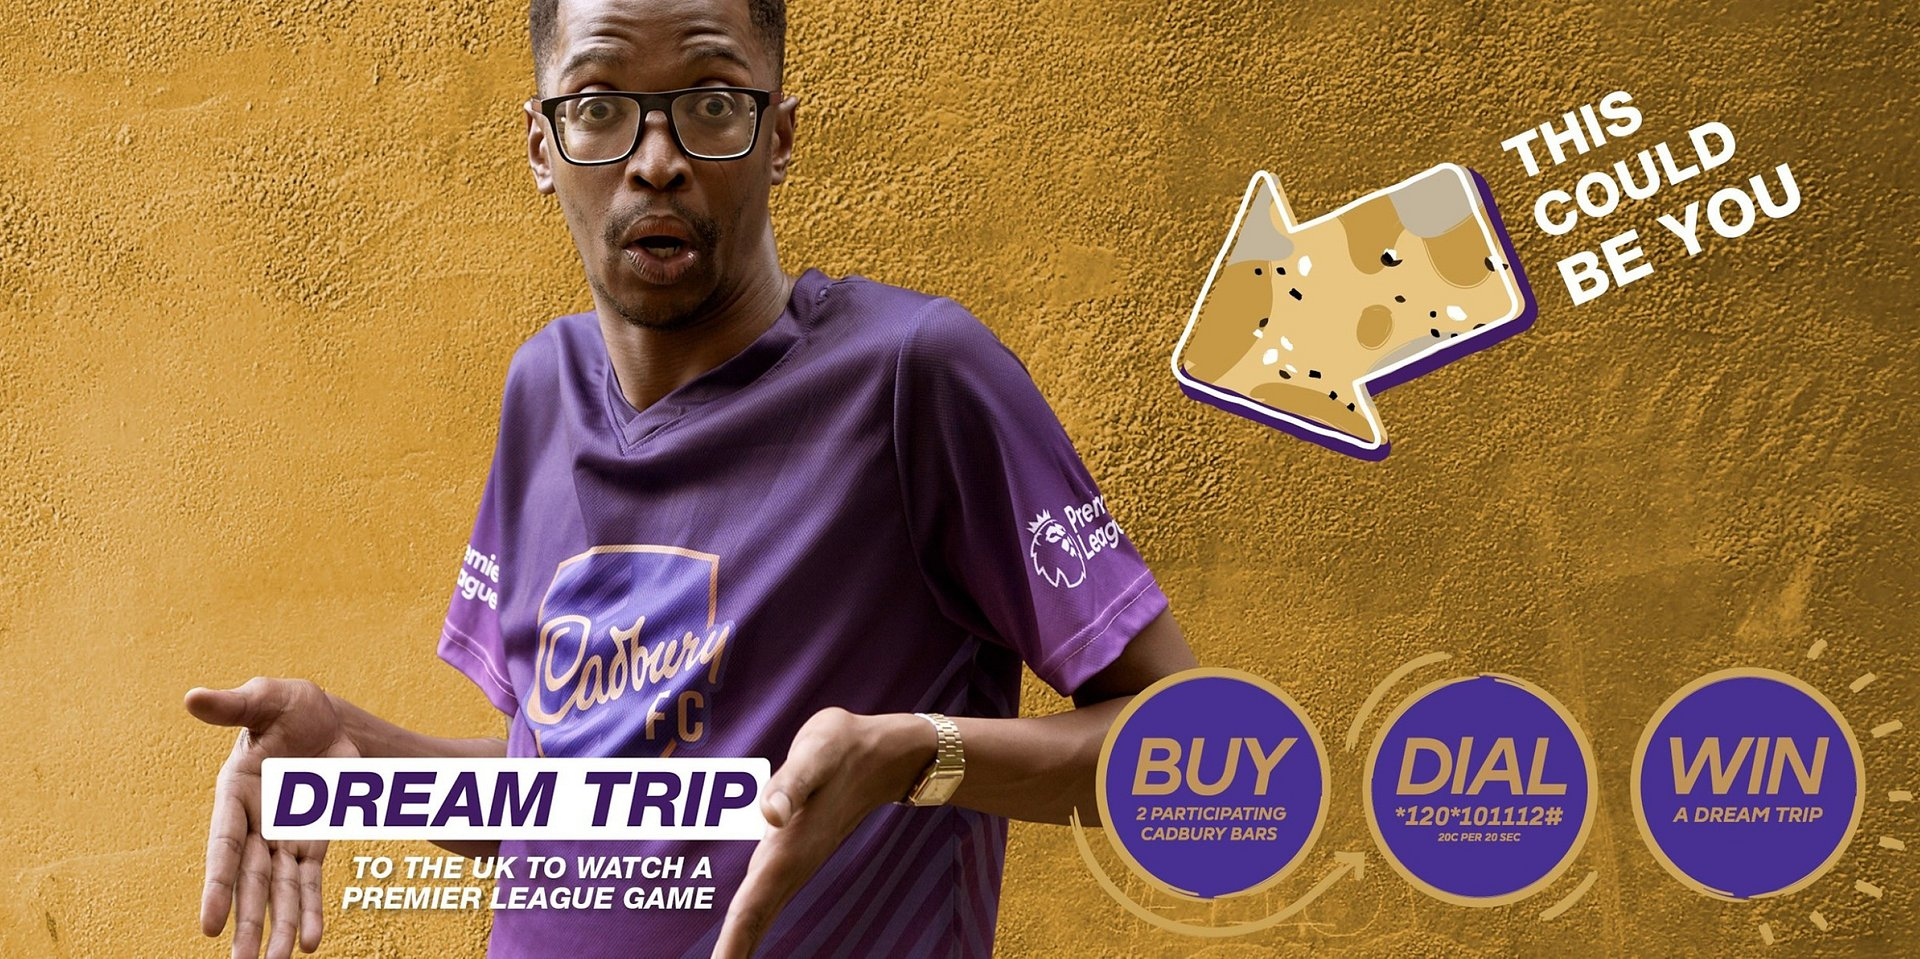 Join The Every Fan Man as he shows fans how they can 'Taste The Action' with Cadbury